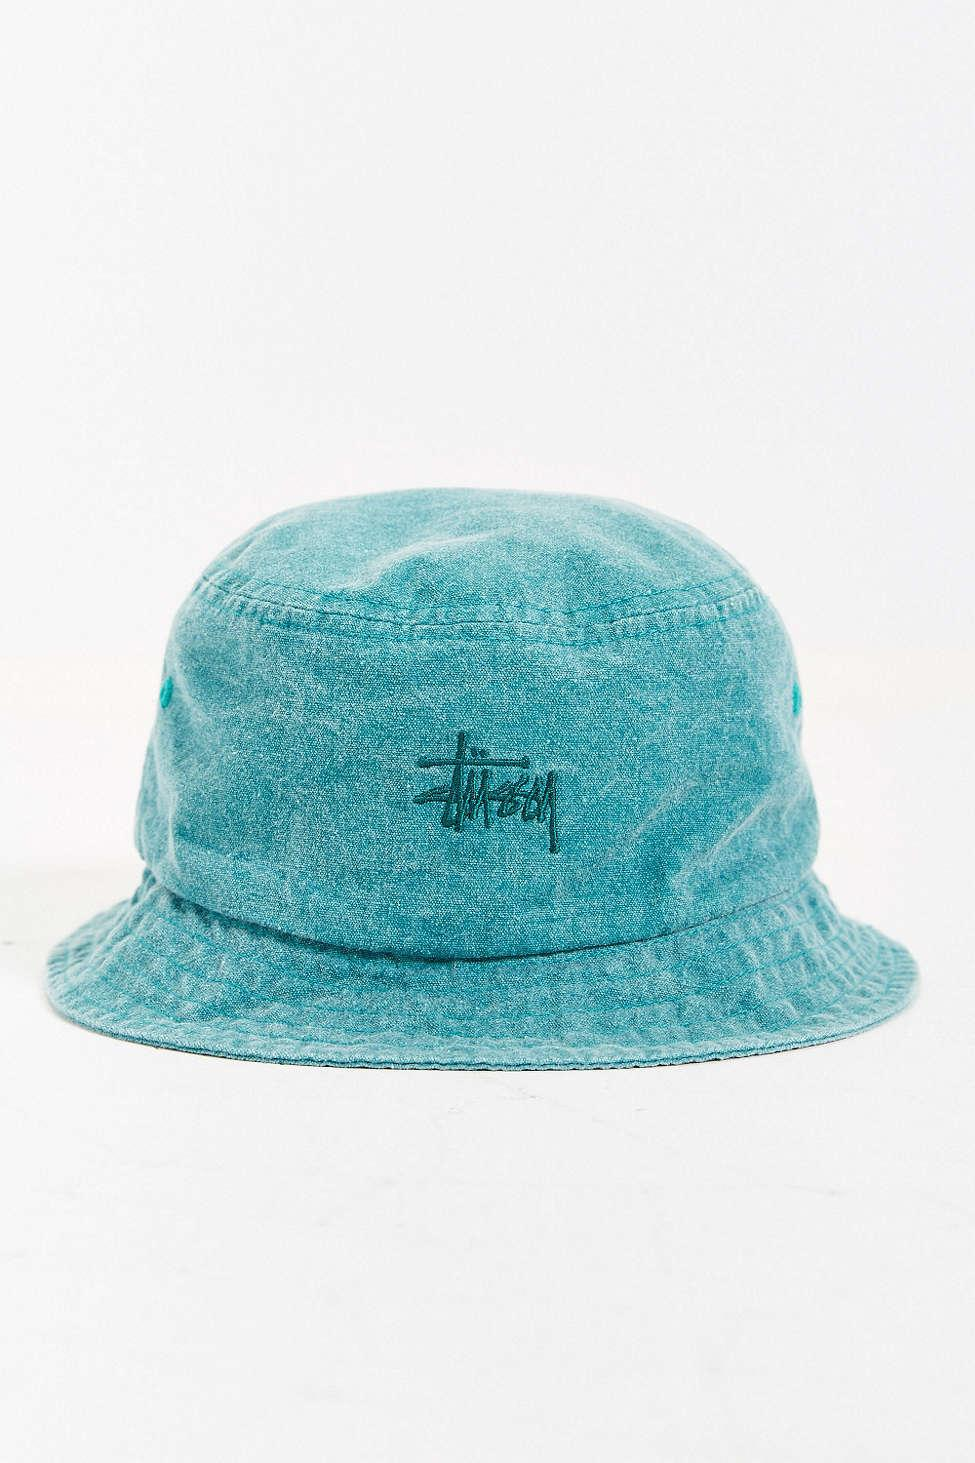 636027e6 Stussy Signature Bucket Hat in Blue for Men - Lyst